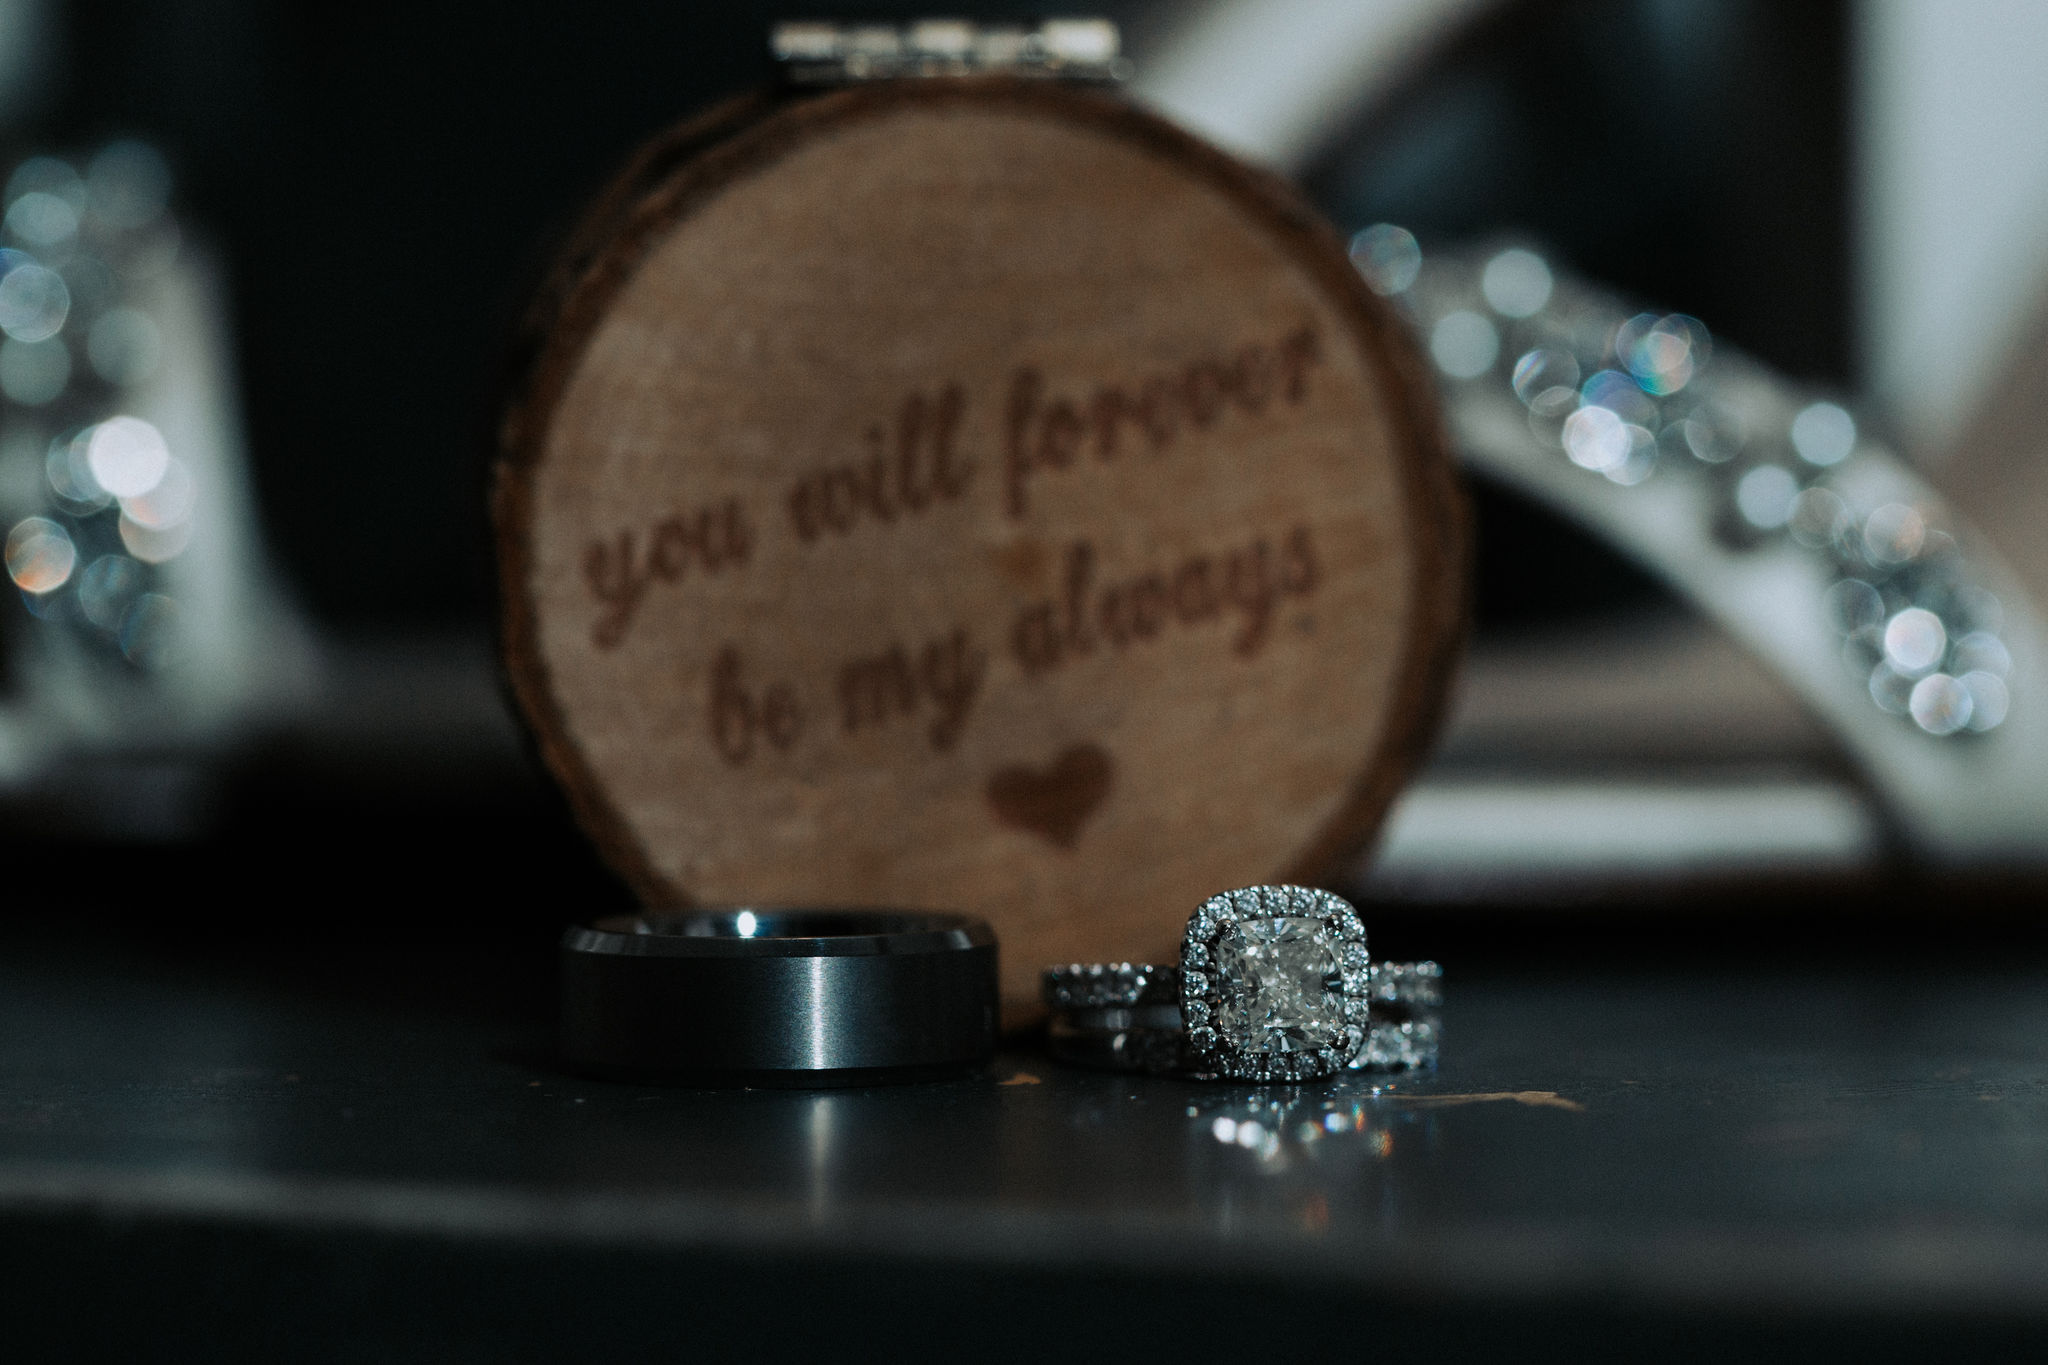 You will forever be my always. A beautiful photo of the bride and groom rings.